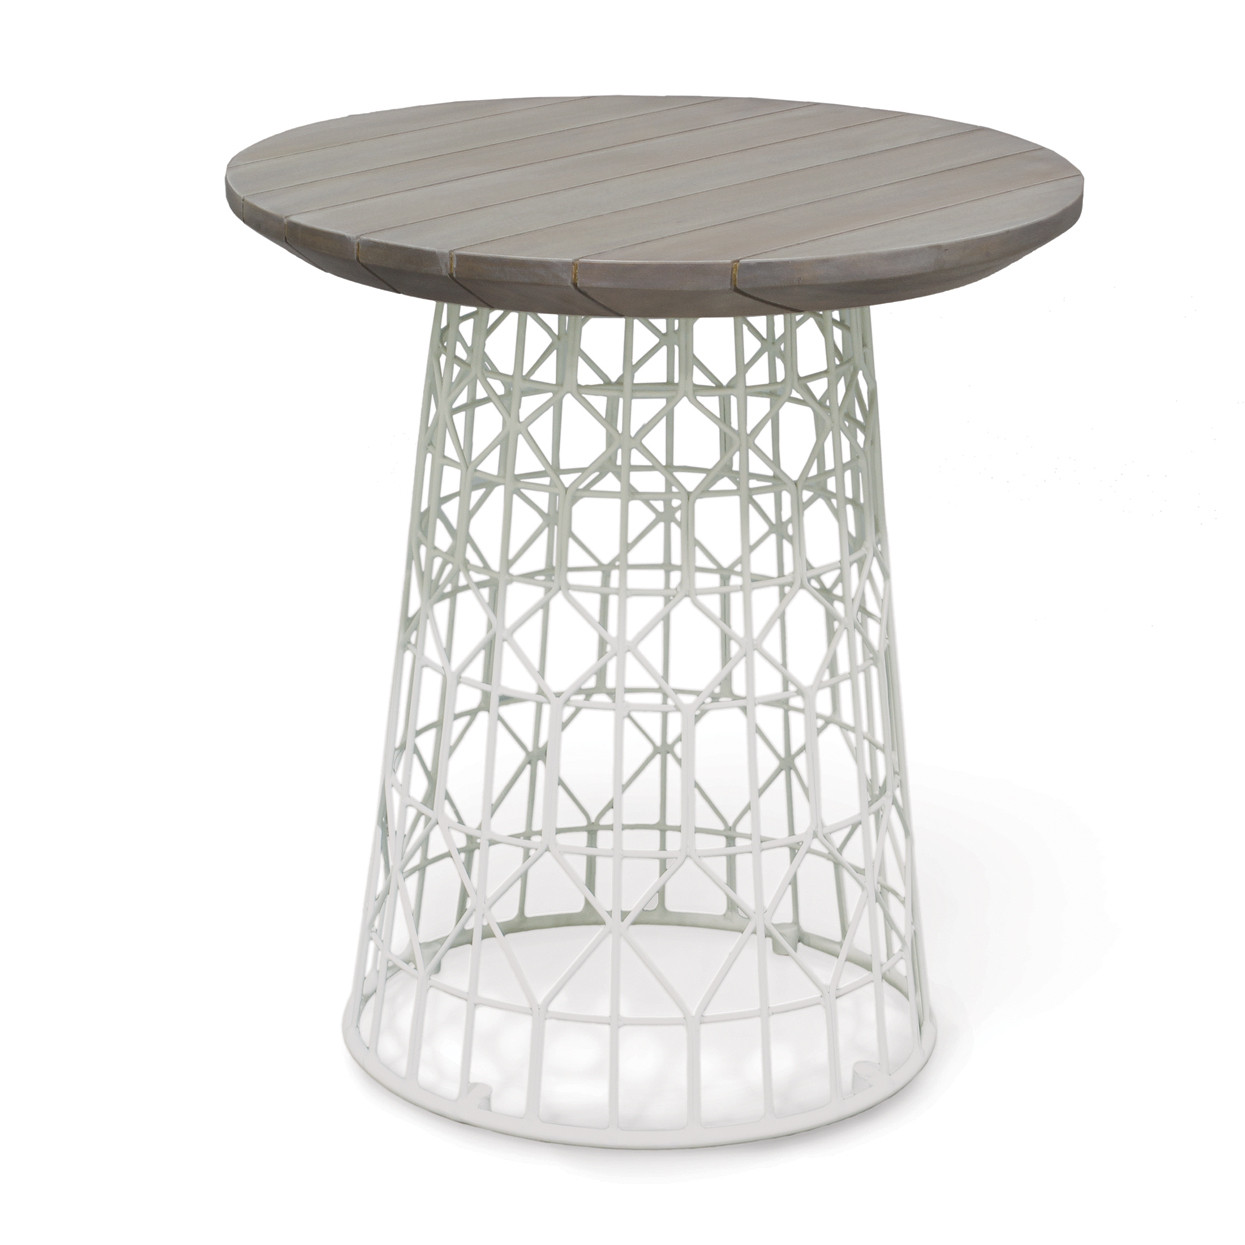 Best ideas about Outdoor Side Table . Save or Pin Capri Outdoor Side Table White Now.